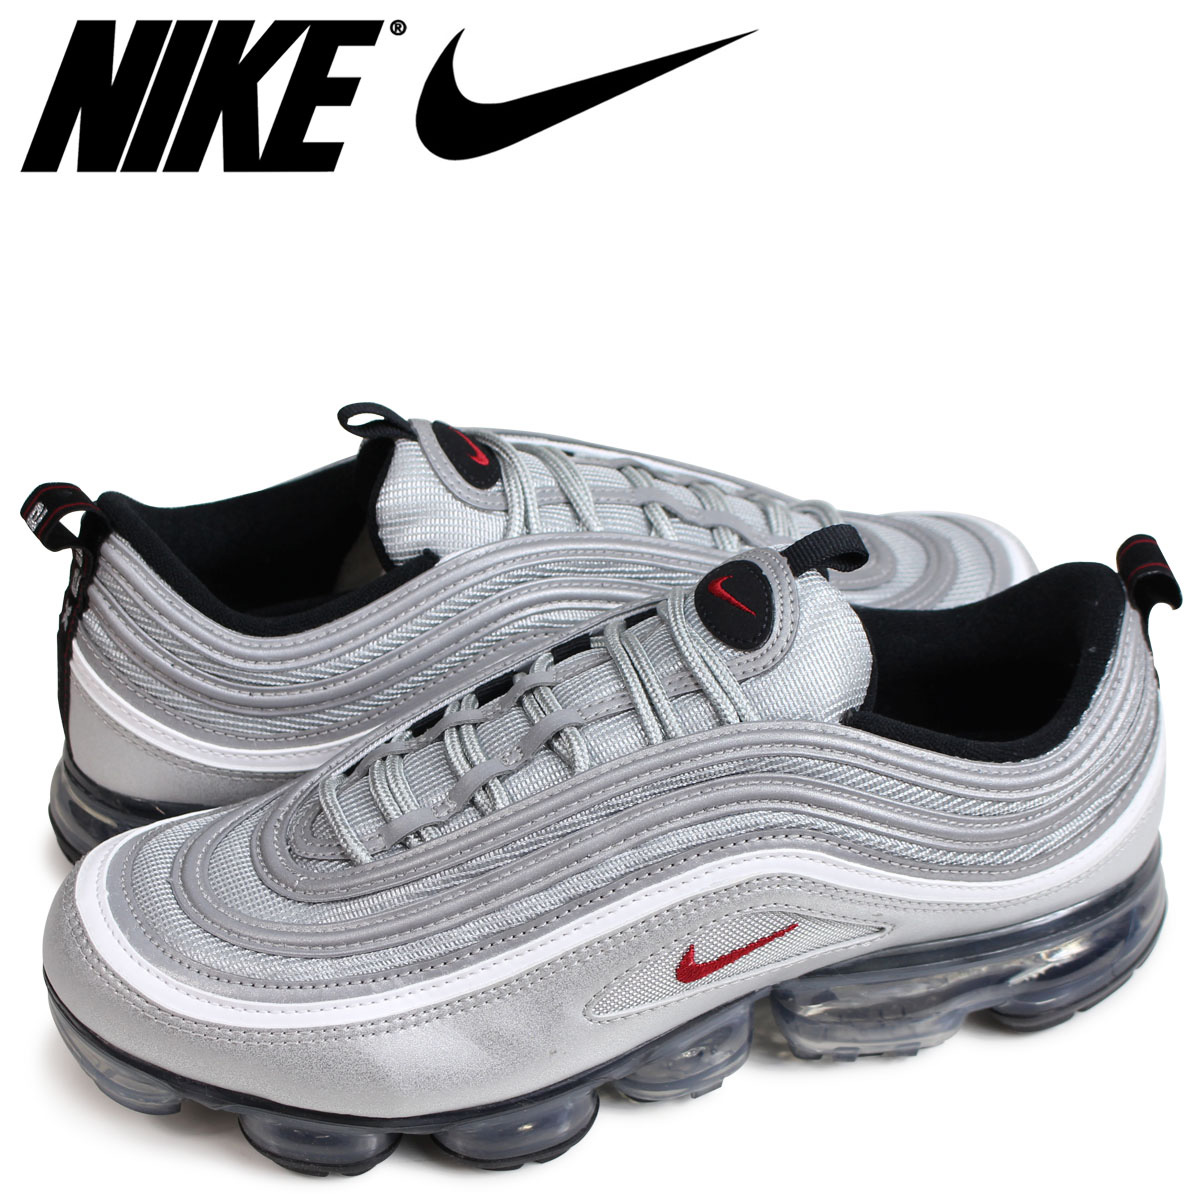 finest selection a9a8f a71a8 NIKE AIR VAPORMAX 97 Nike air vapor max 97 sneakers men silver AJ7291-002